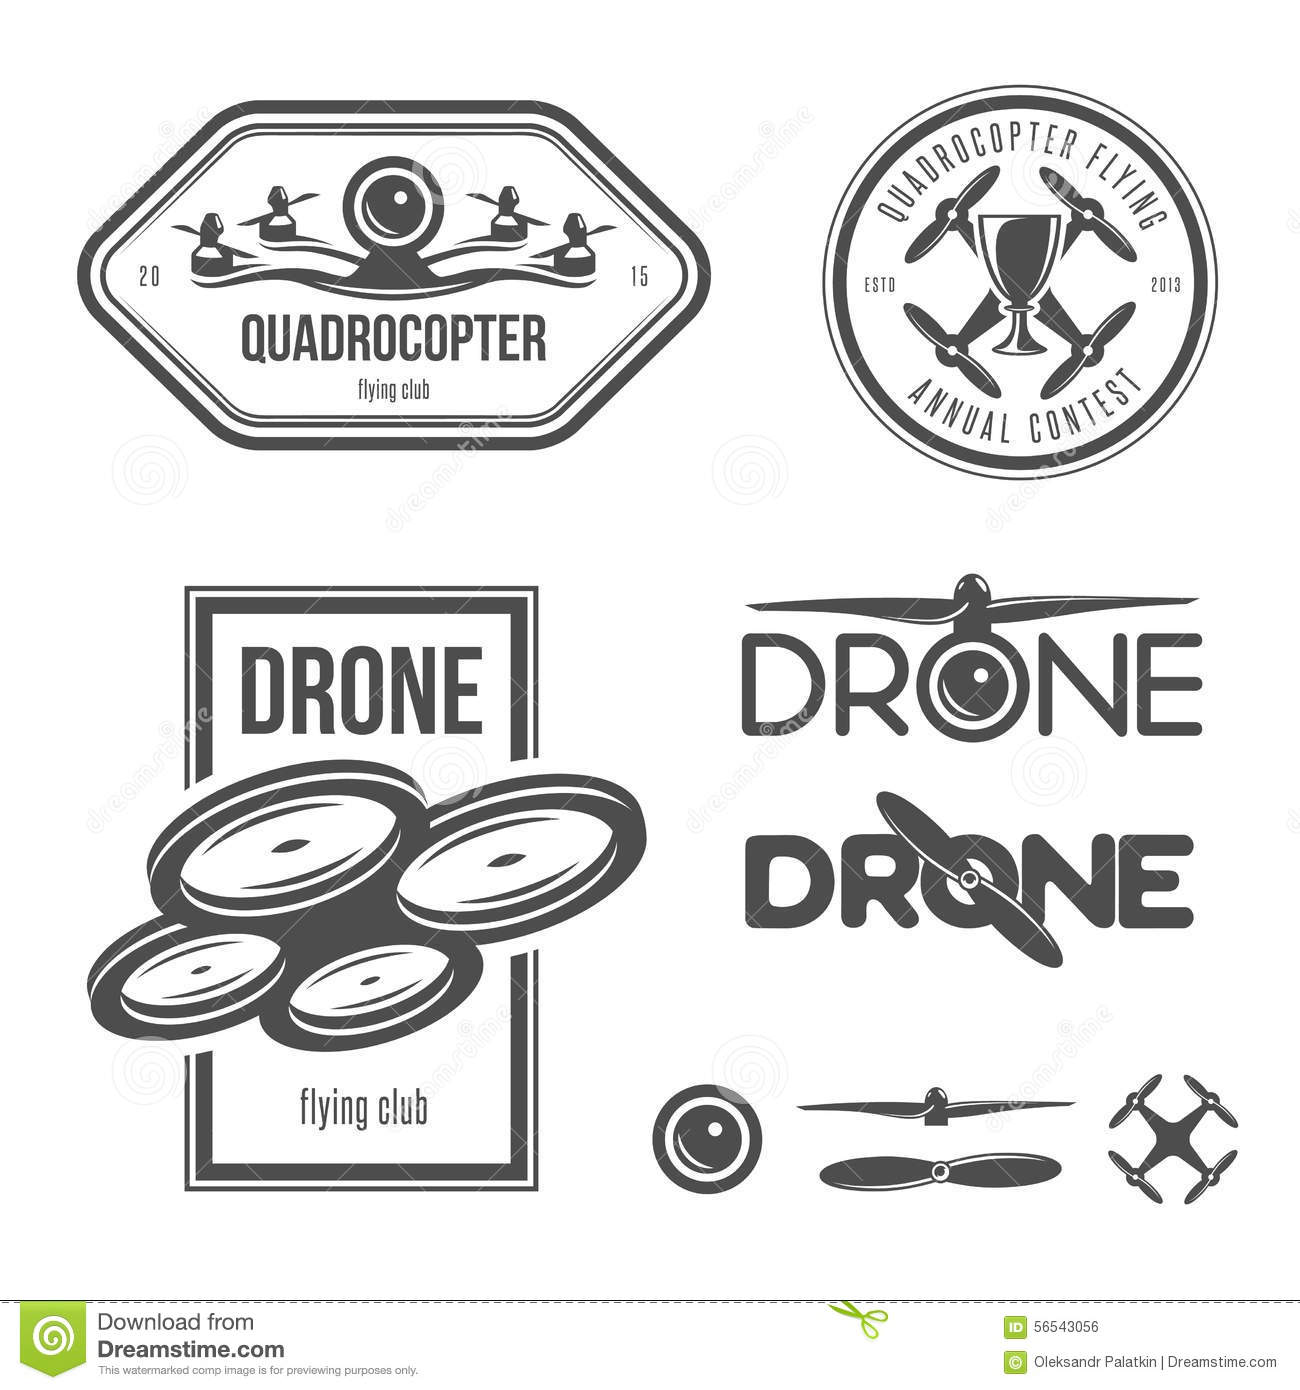 6 rotor remote control helicopter camera with Stock Illustration Vector Set Drone Flying Club Labels Badges Design Elements Image56543056 on Showthread in addition 1200343 32796957827 furthermore Hexacopter Microcopter 24 2 2010 together with Stock Illustration Quadcopter Flying Drone Icons White Background Vector Illustration Image51162112 likewise 321101959386.